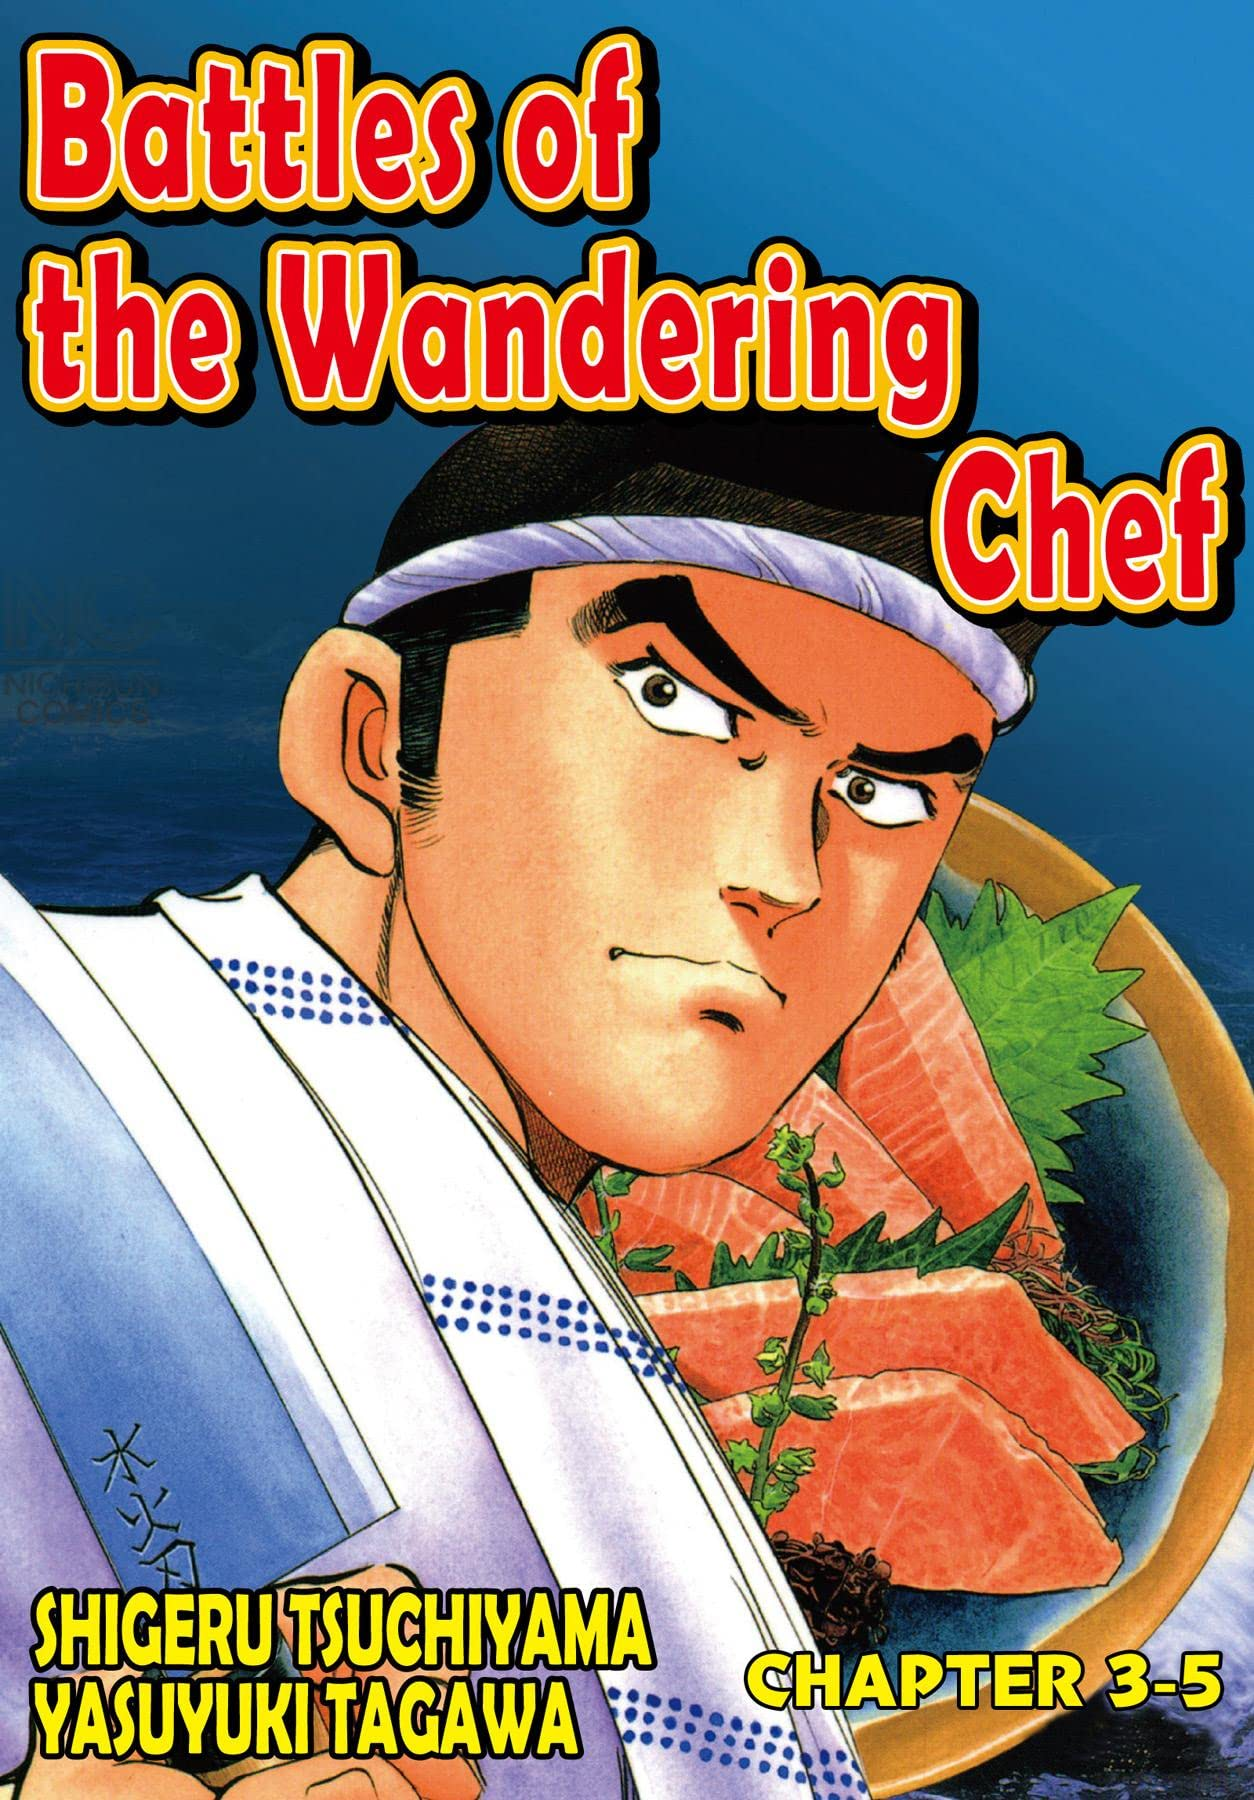 BATTLES OF THE WANDERING CHEF #20